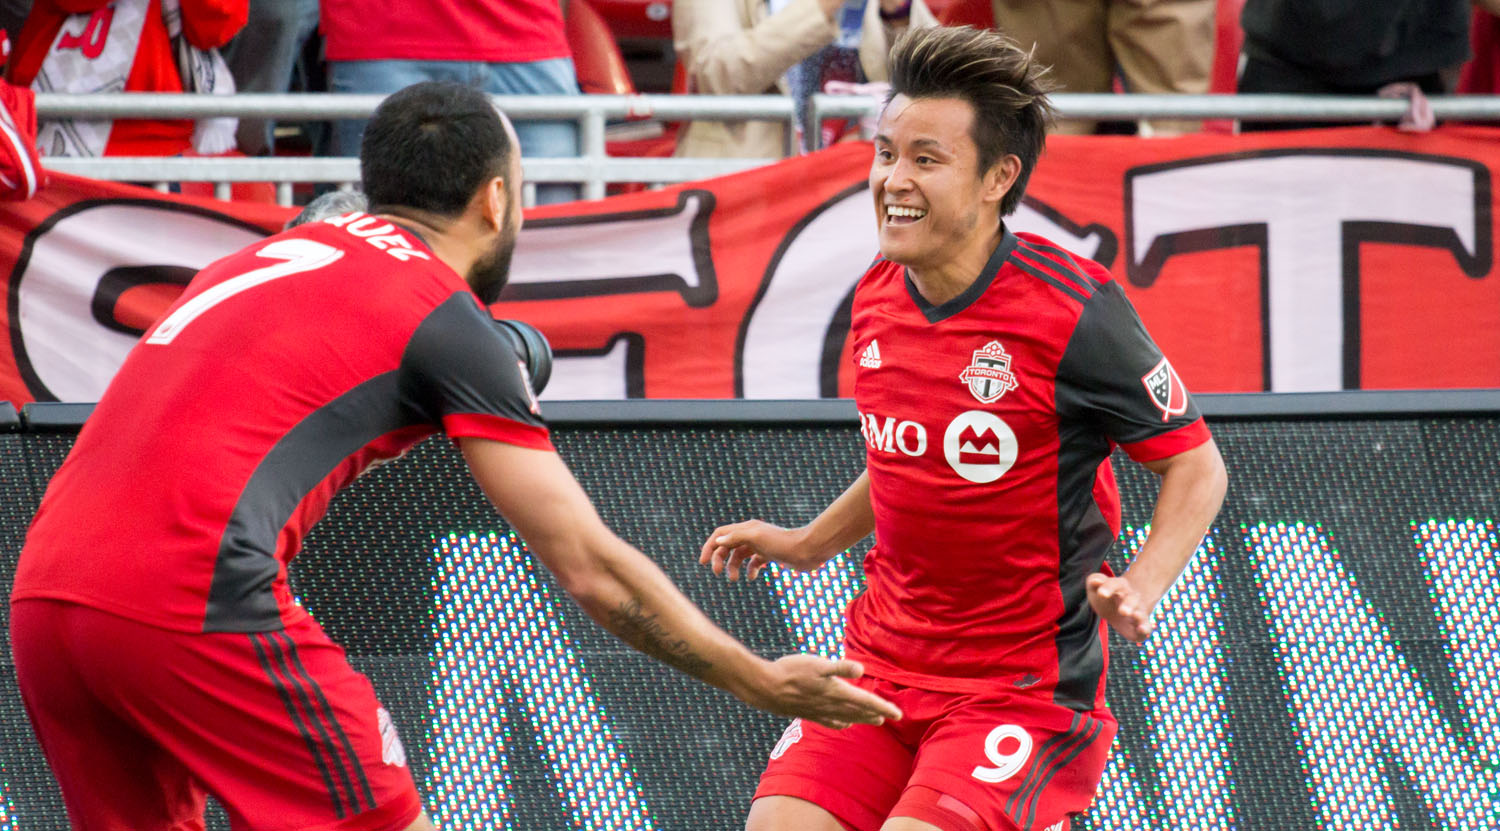 Tsubasa Endoh and Víctor Vázquez celebrating a beautiful goal to take it to 2-0 over the Ottawa Fury during the second leg of the Canadian Championship in 2017.Image by Dennis Marciniak of denMAR Media.